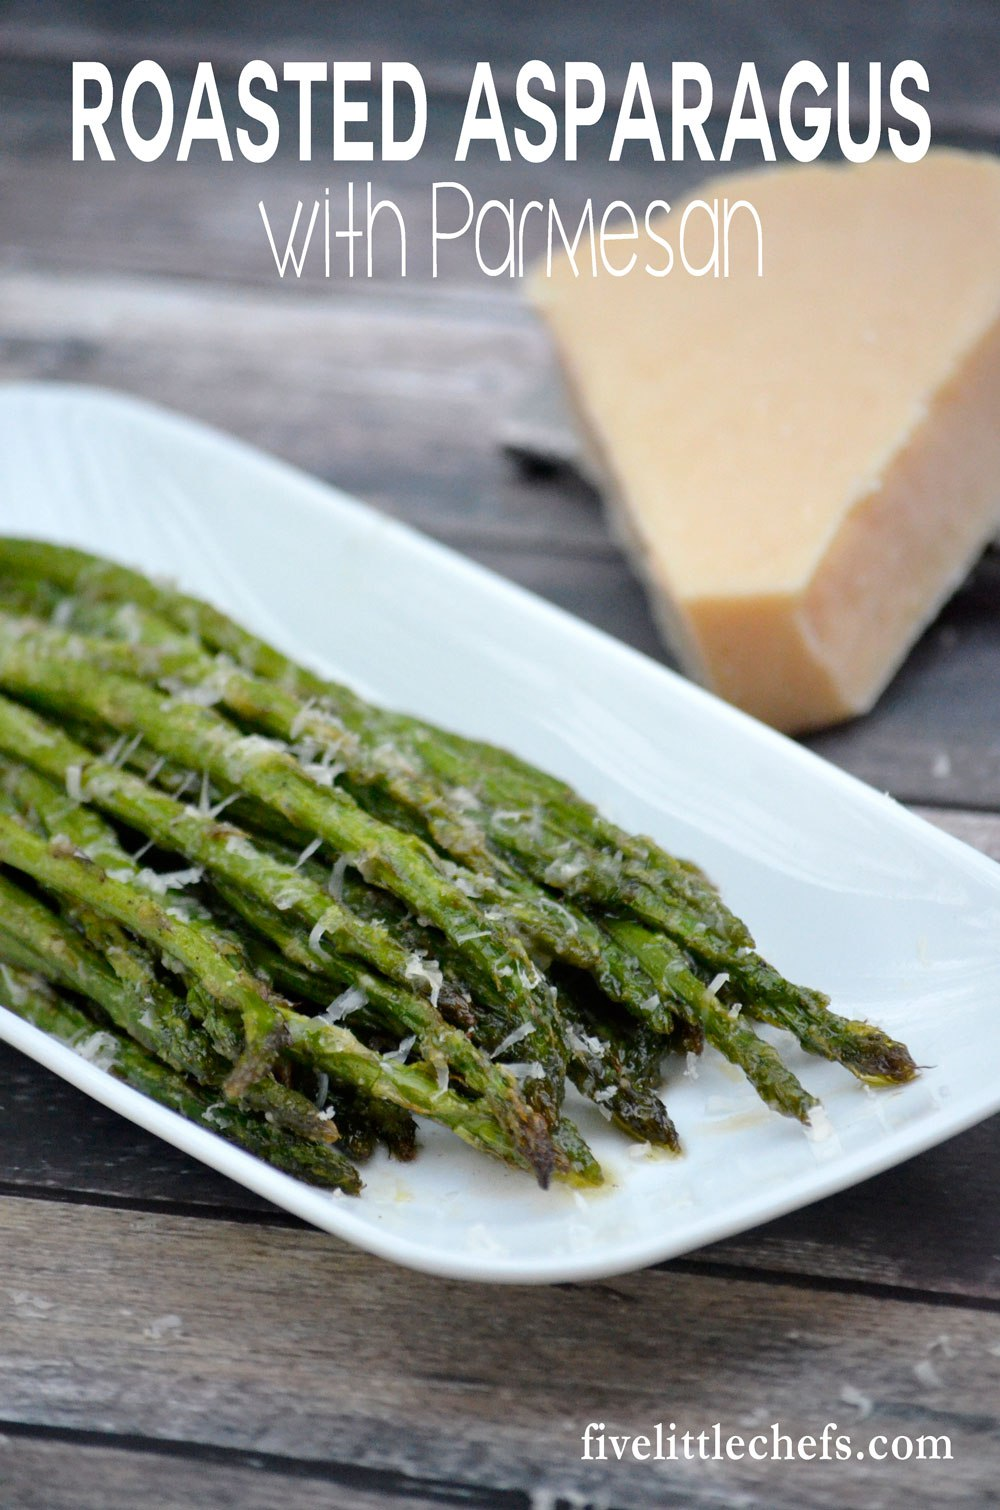 Roasted Asparagus with Parmesan can be made in under 15 minutes. It is simple enough for a quick side, yet elegant for a special meal.